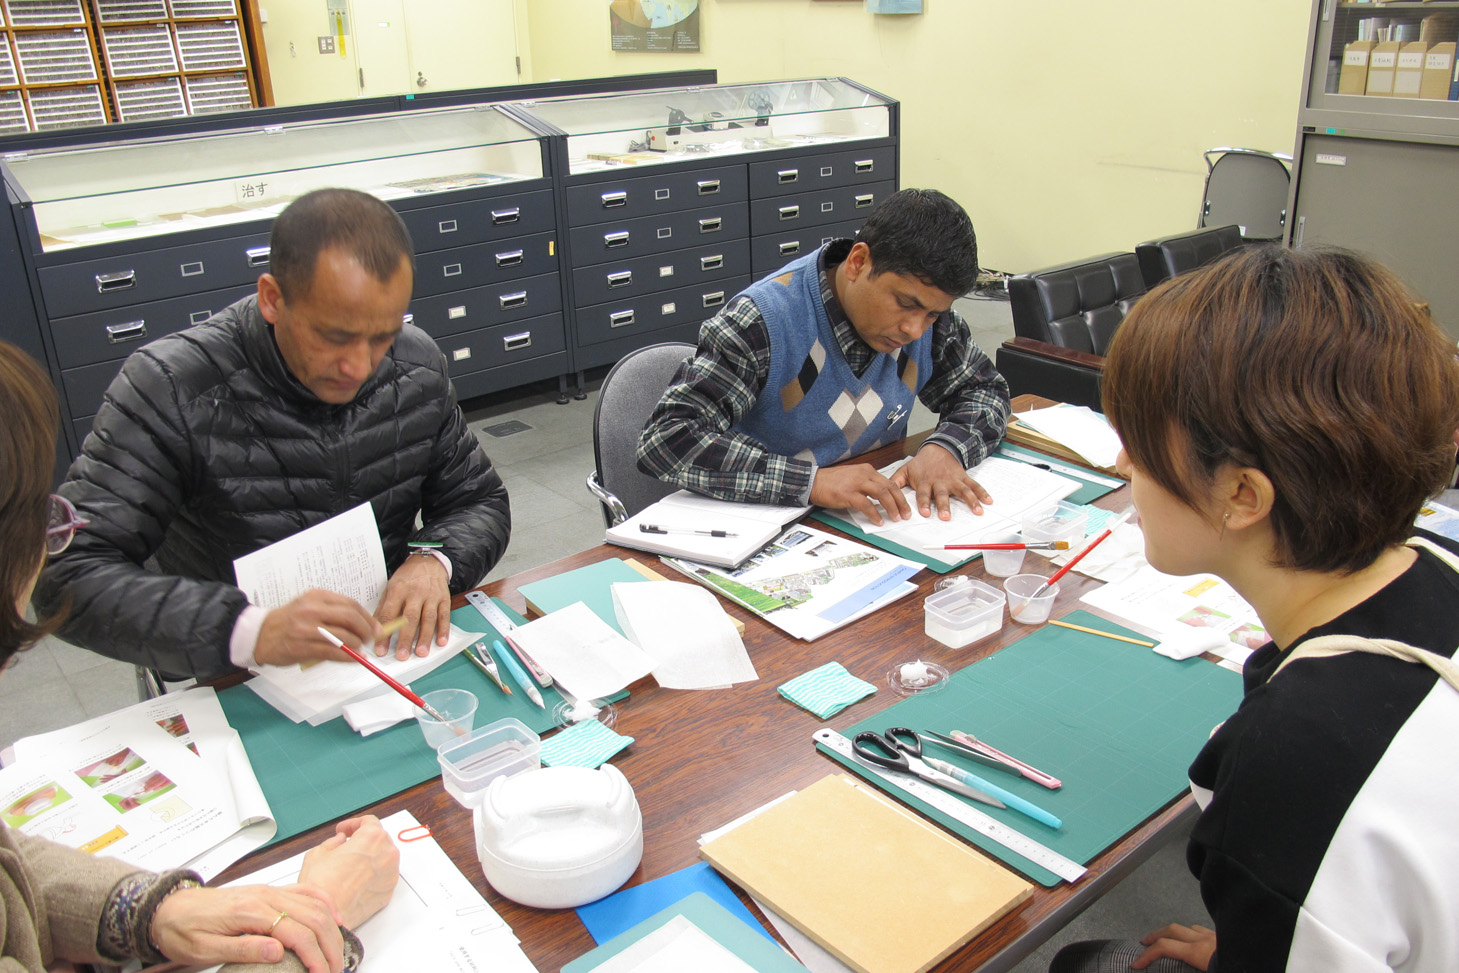 Colleagues from Nepal learn about book repair using washi